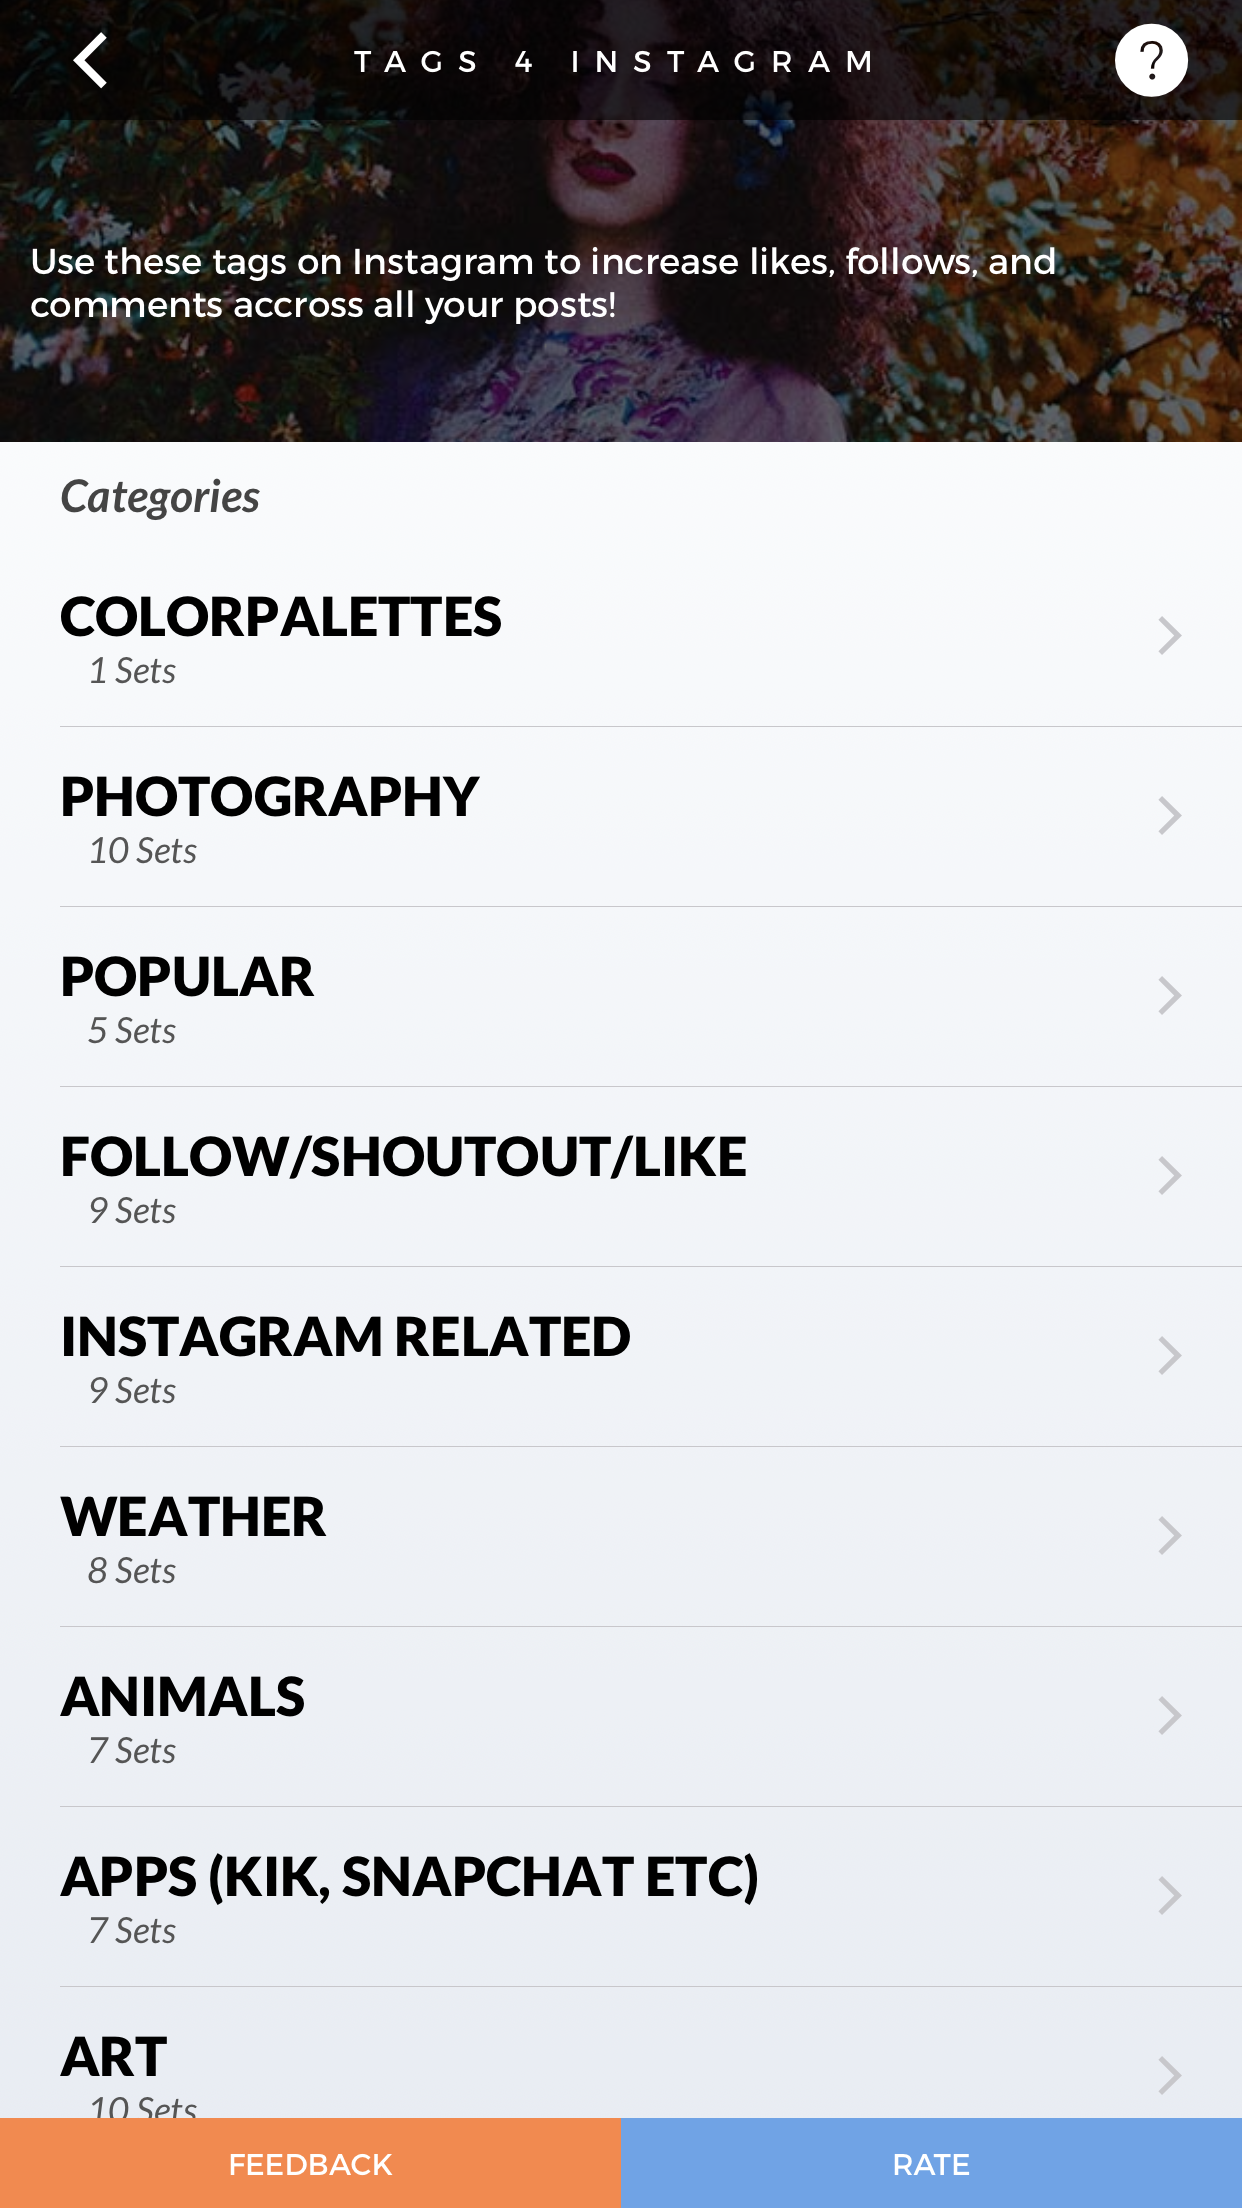 The Carbon app divides the hashtag sets by categories.